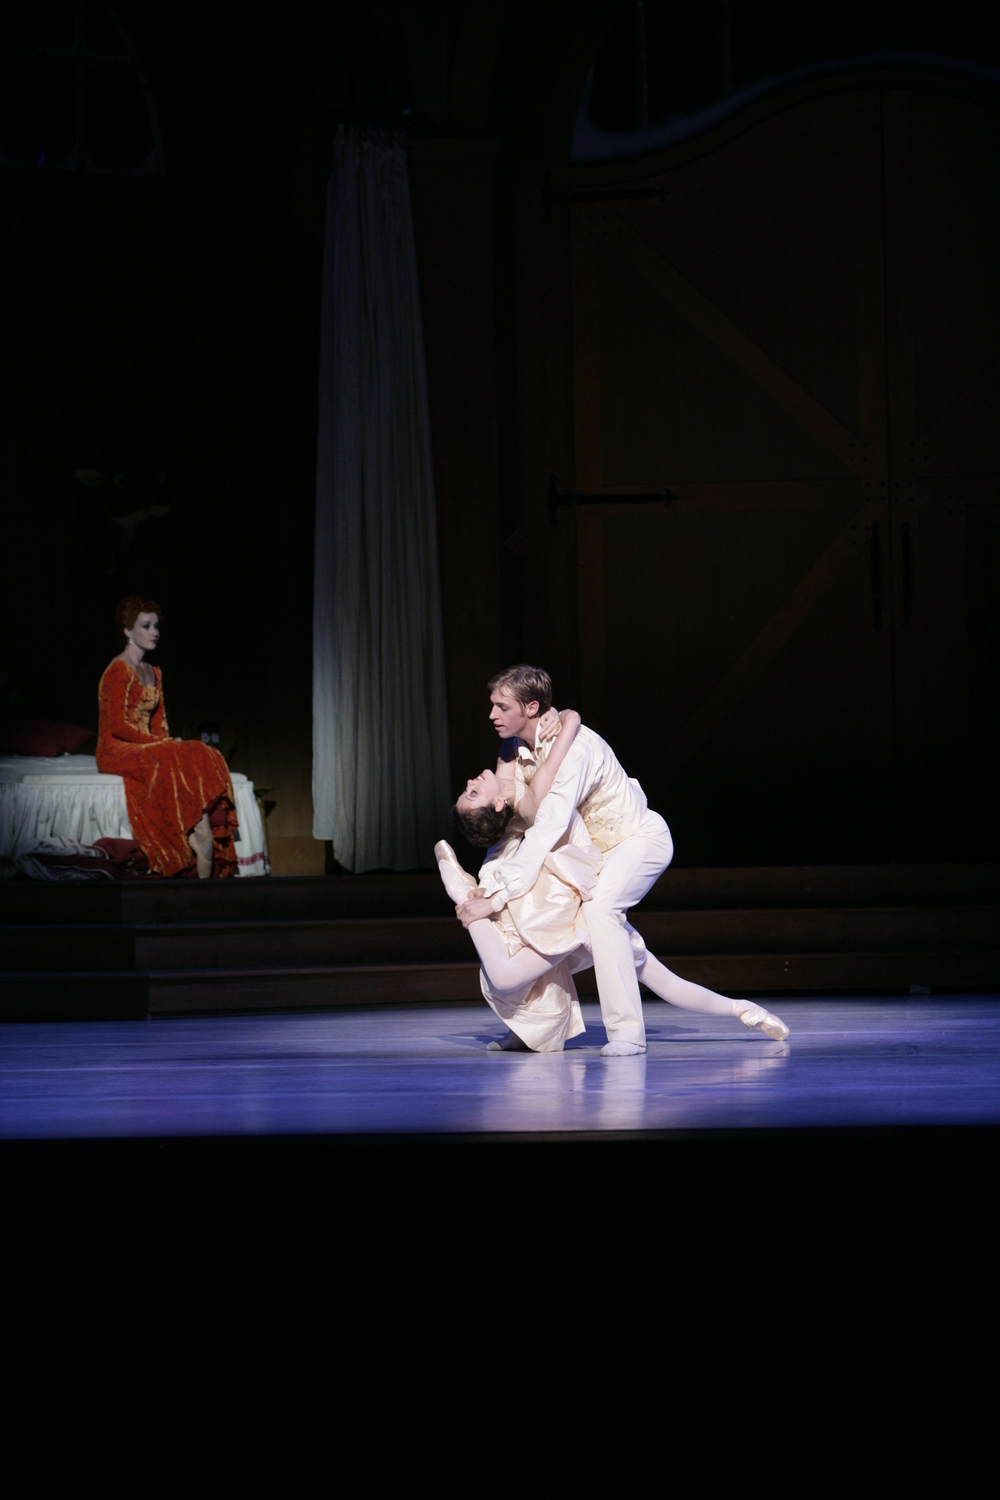 Juliet Burnett as Sophie with Ty King-Wall as Octavian in Graeme Murphy's The Silver Rose